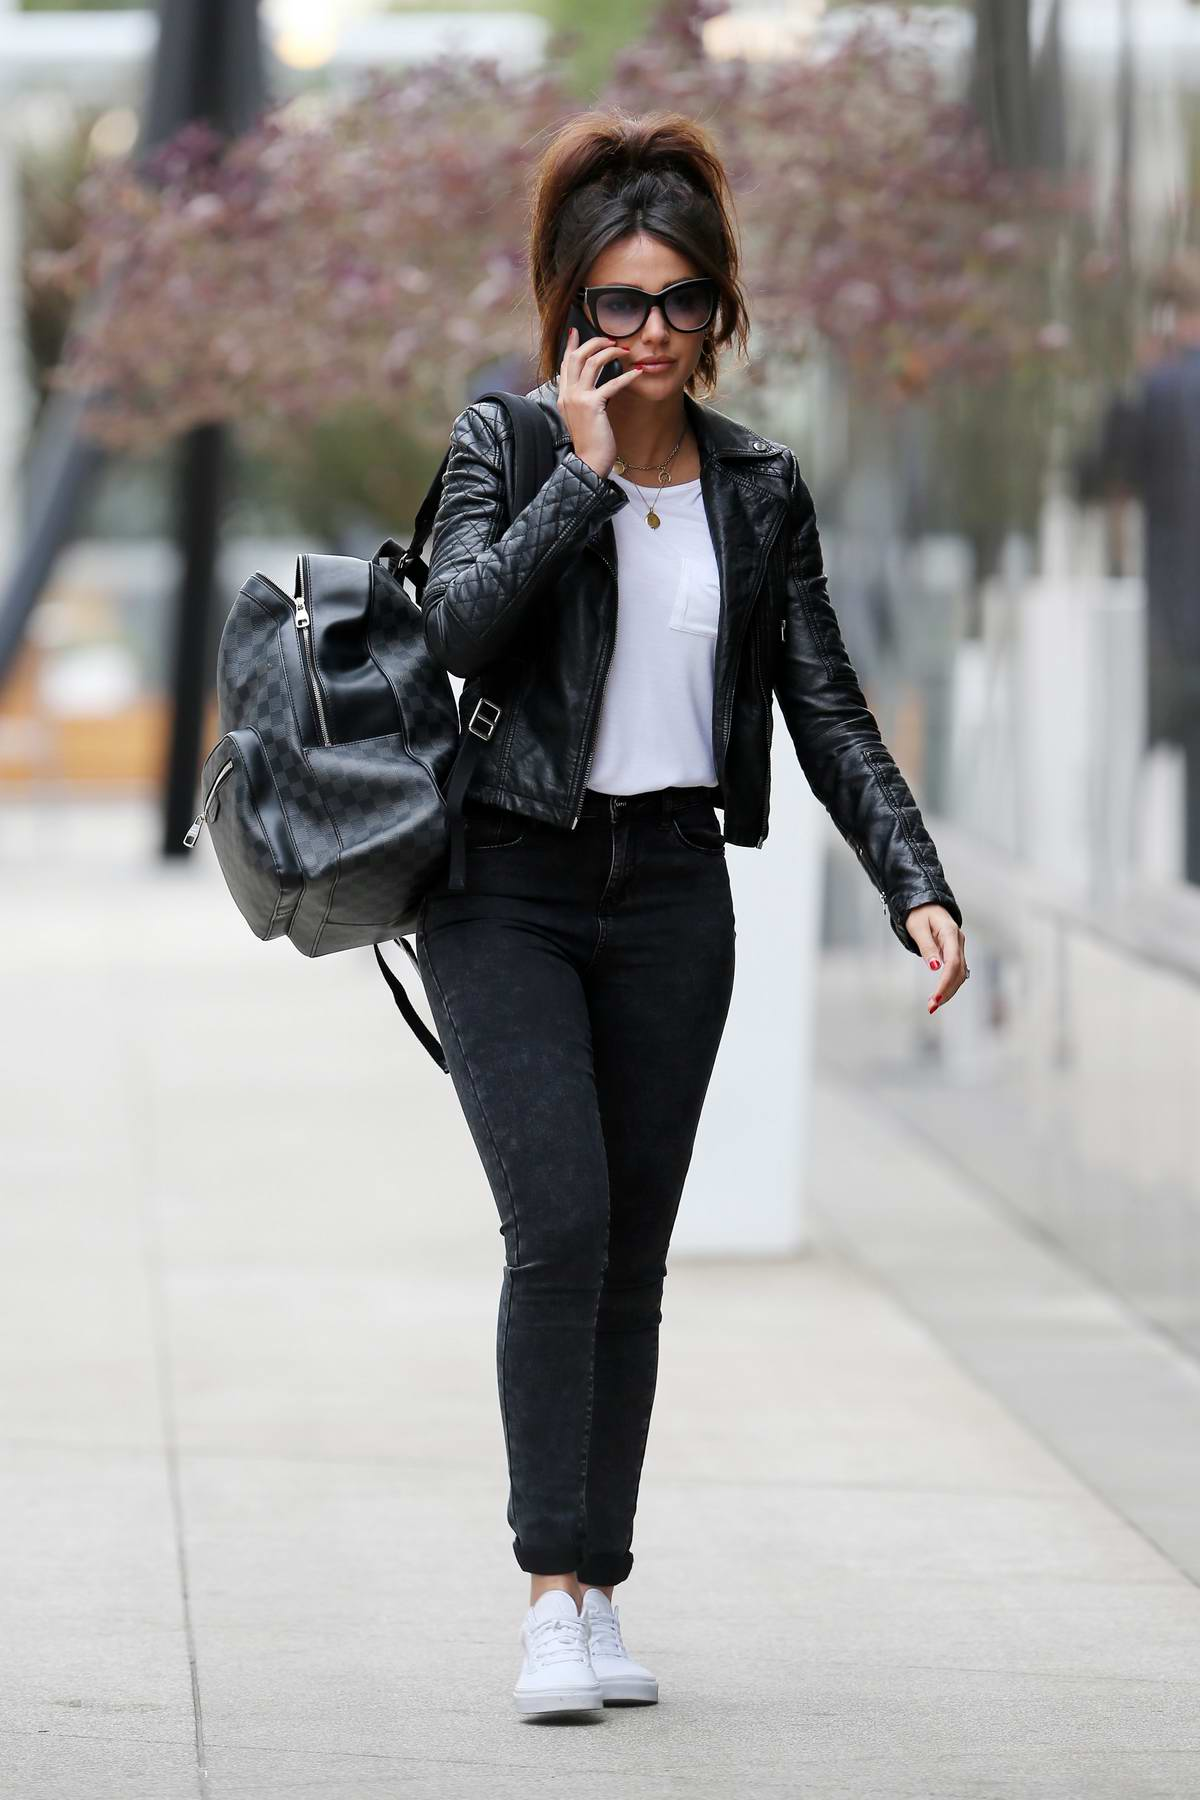 Michelle Keegan leaving the gym after her morning workout wearing black leather jacket and jeans in Los Angeles